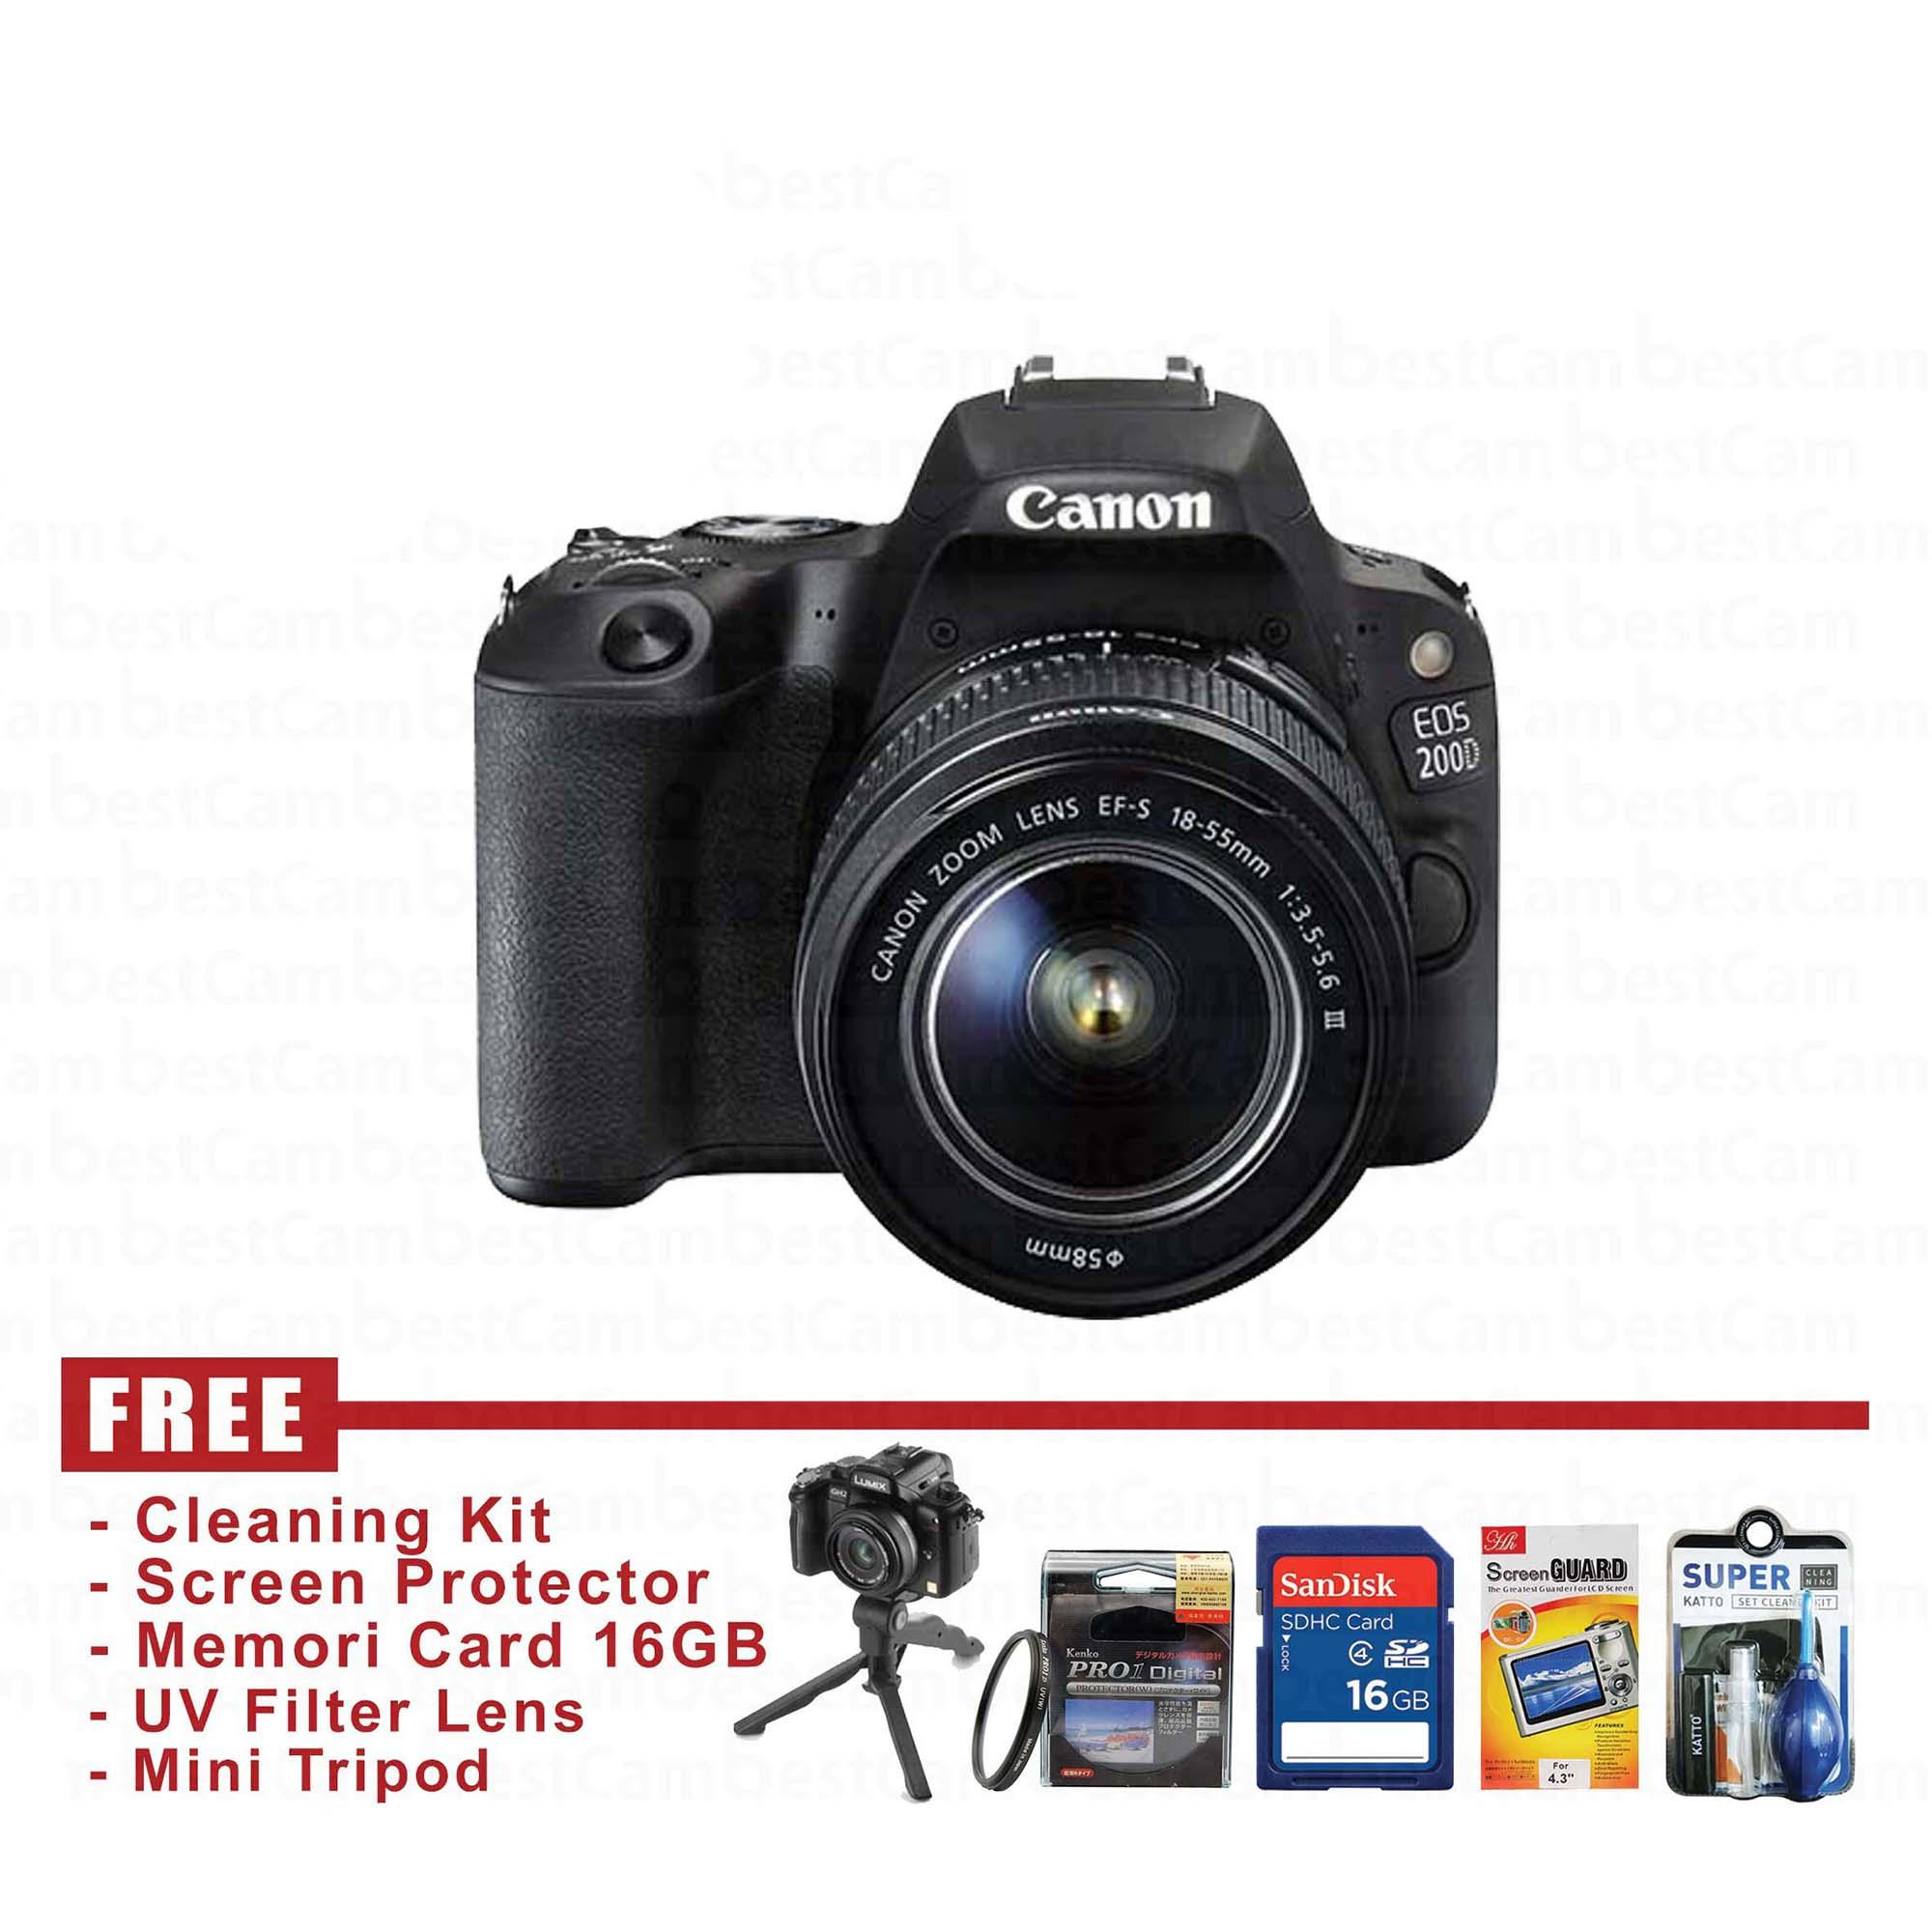 CANON EOS 200D KIT 18-55mm III - FREE Accessories